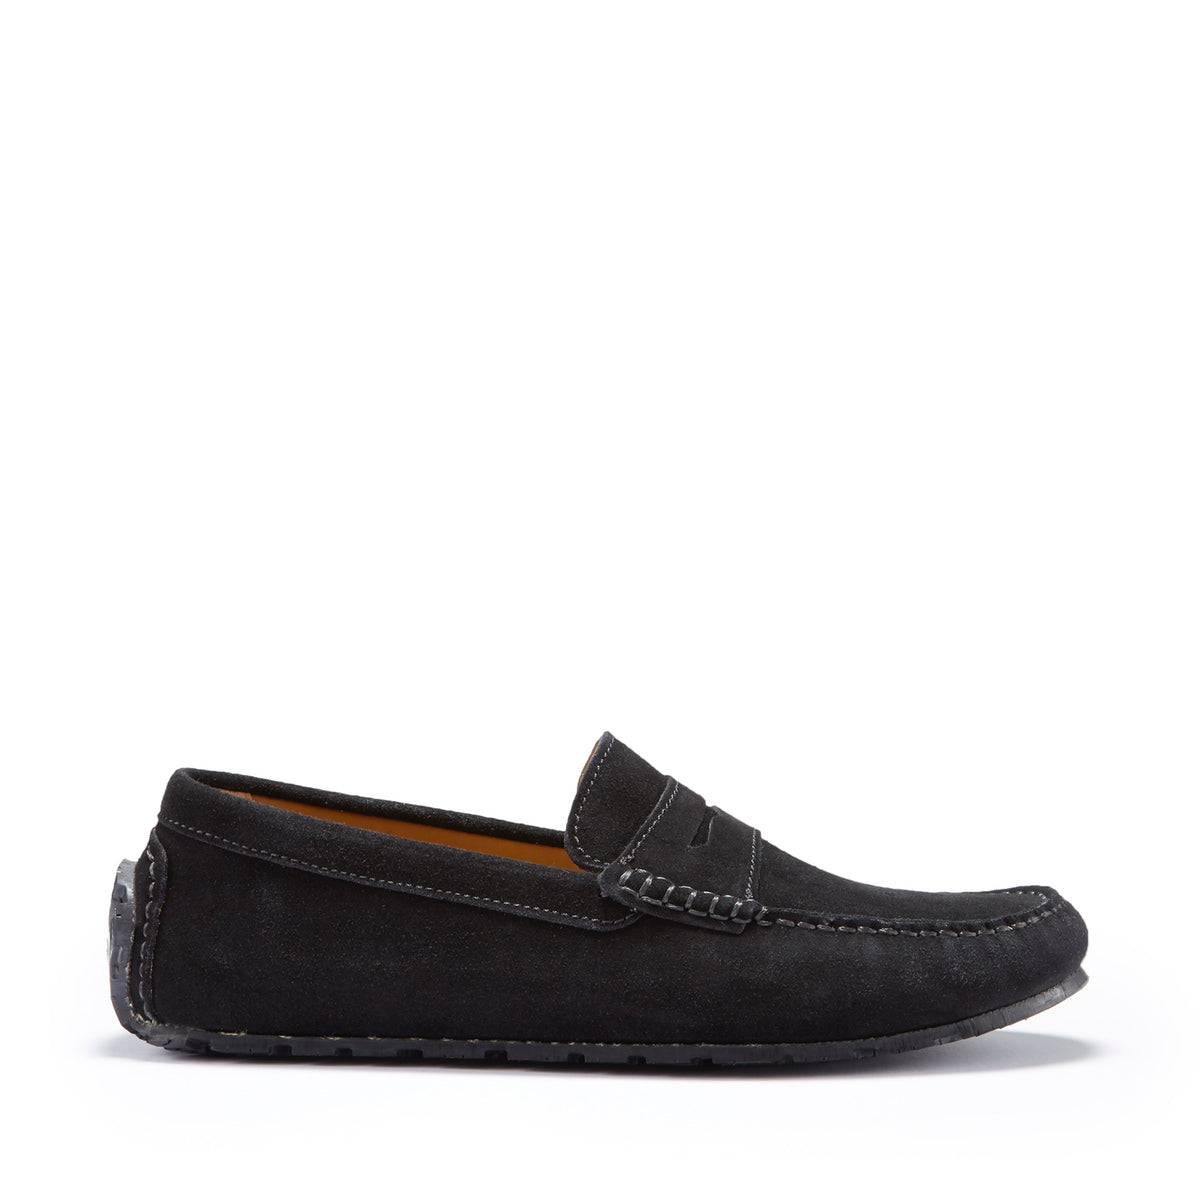 Tyre Sole Penny Driving Loafers, black suede